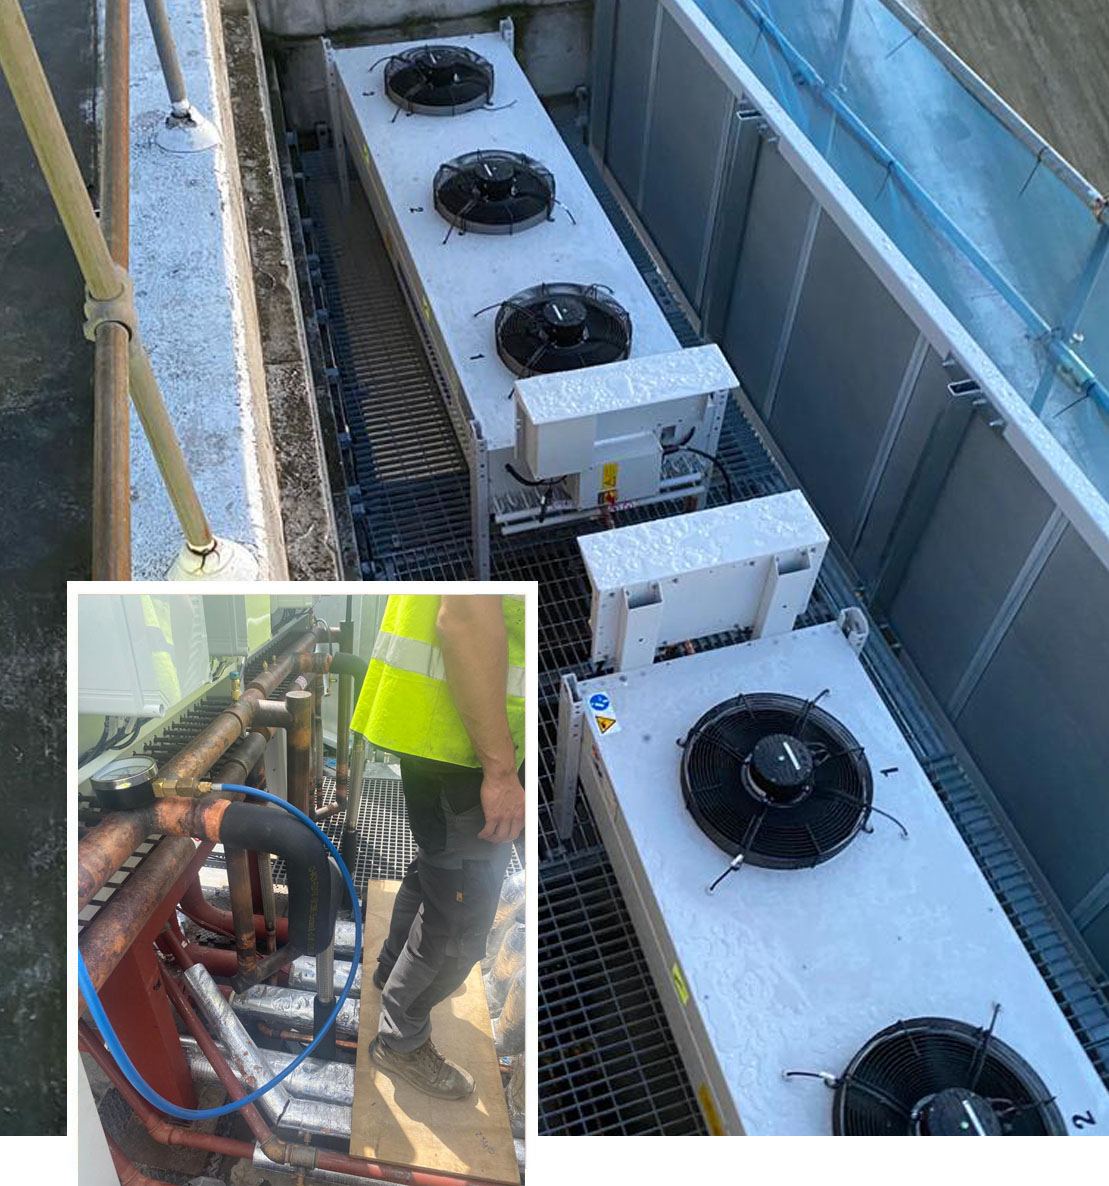 water chillers install in London at Great Ormond Street hospital